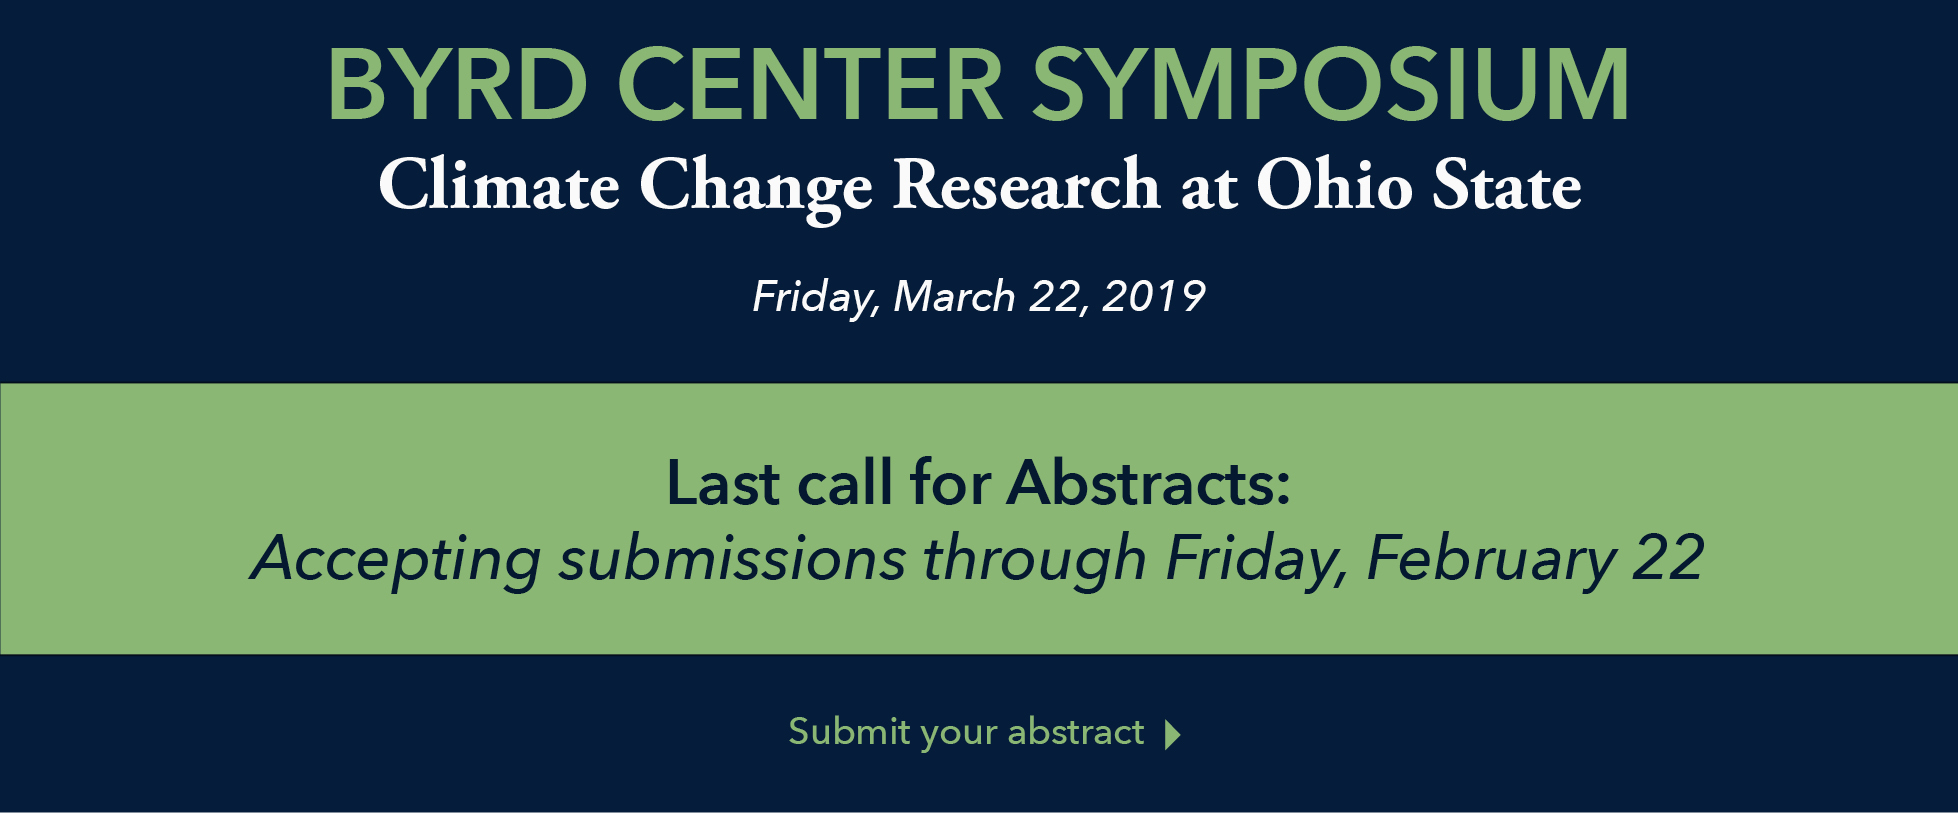 2019 Byrd Center Symposium - Last Call for Abstracts